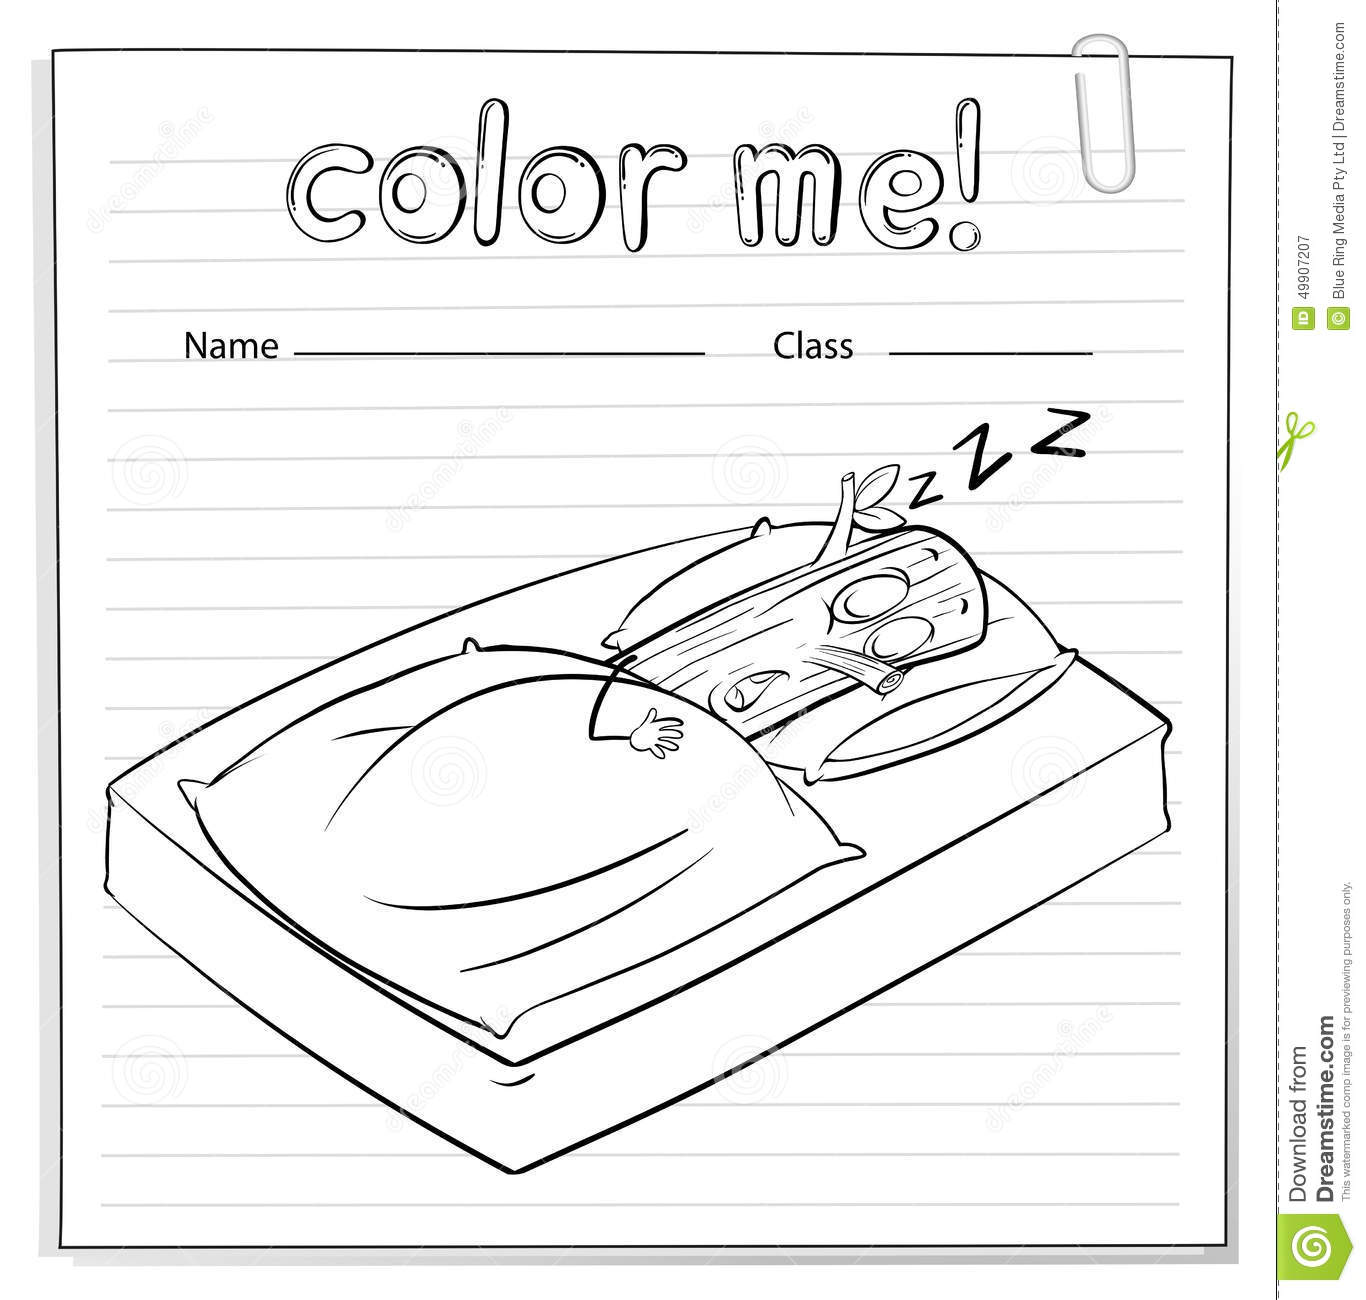 A Color Me Worksheet With A Log Sleeping Stock Vector